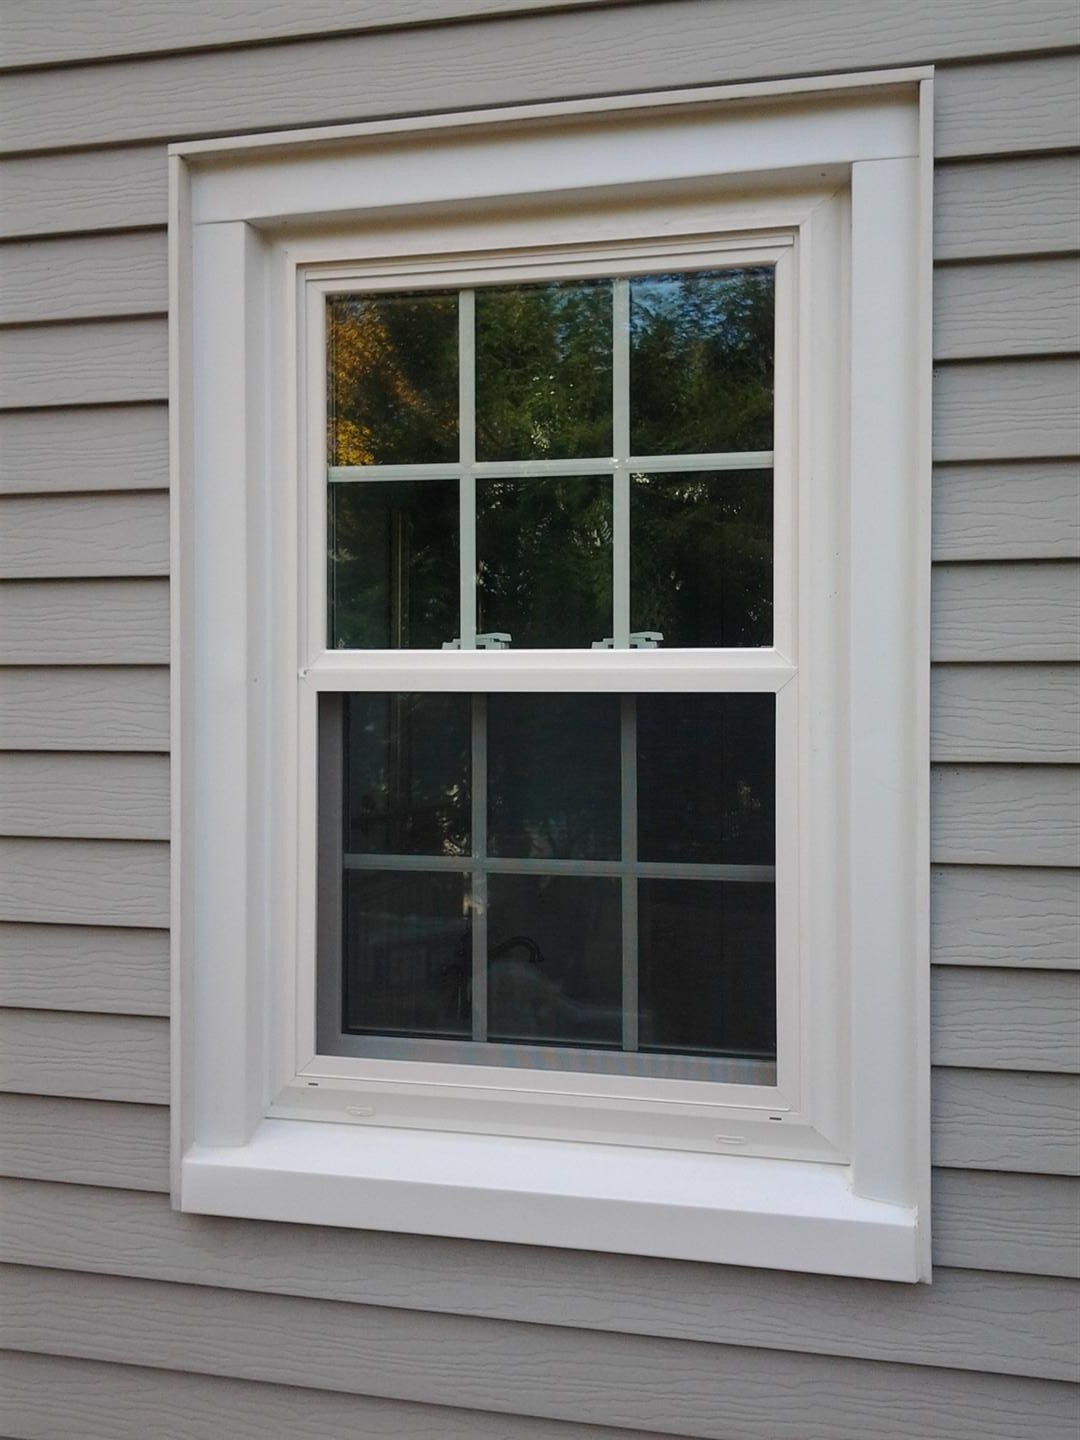 Call m m construction specialist at 908 378 5951 to for Picture window replacement ideas